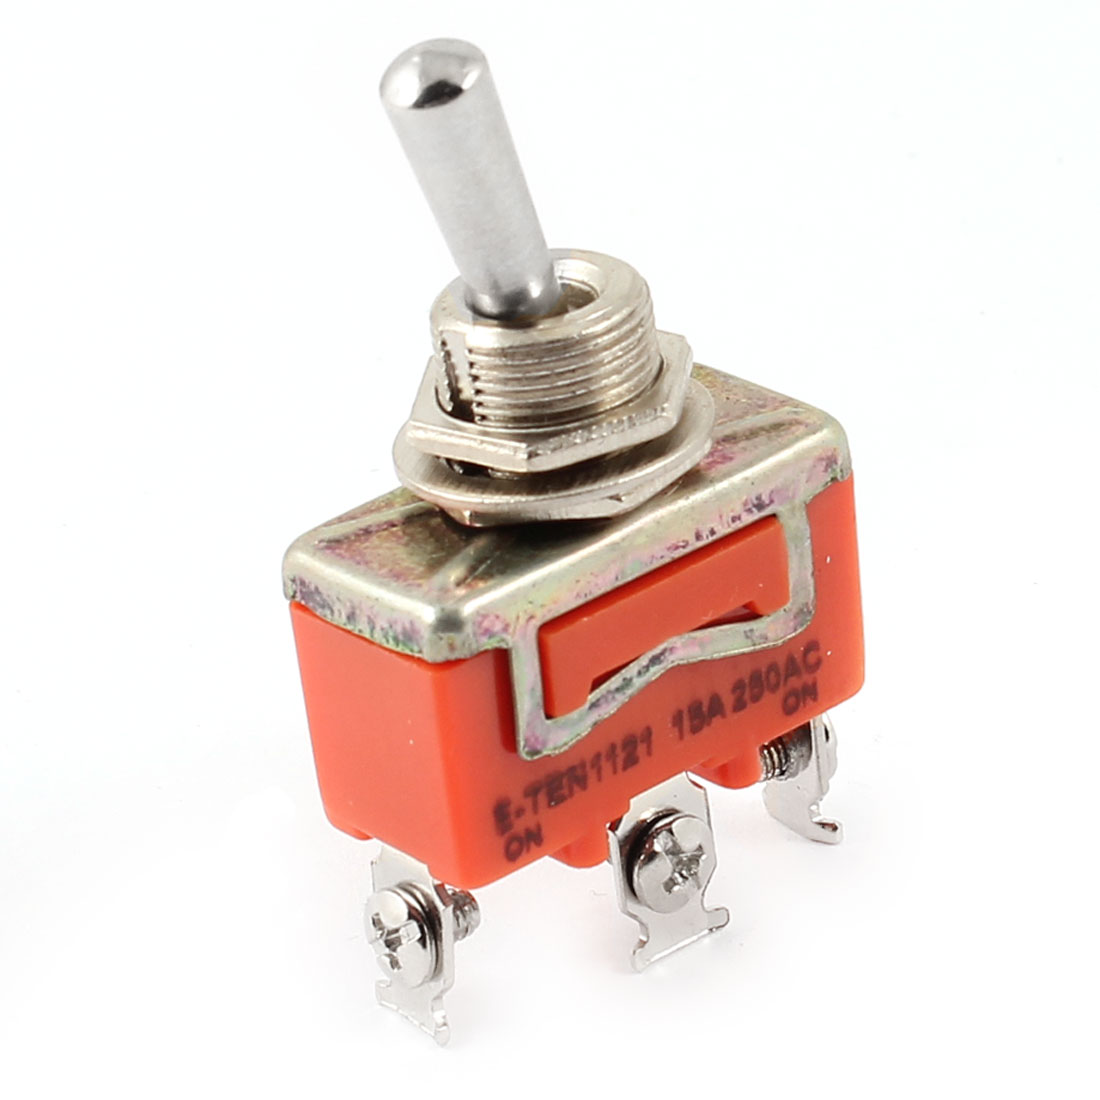 AC 250V 15A ON/ON 2 Position 3 Screw Terminals SPST Latching Toggle Switch